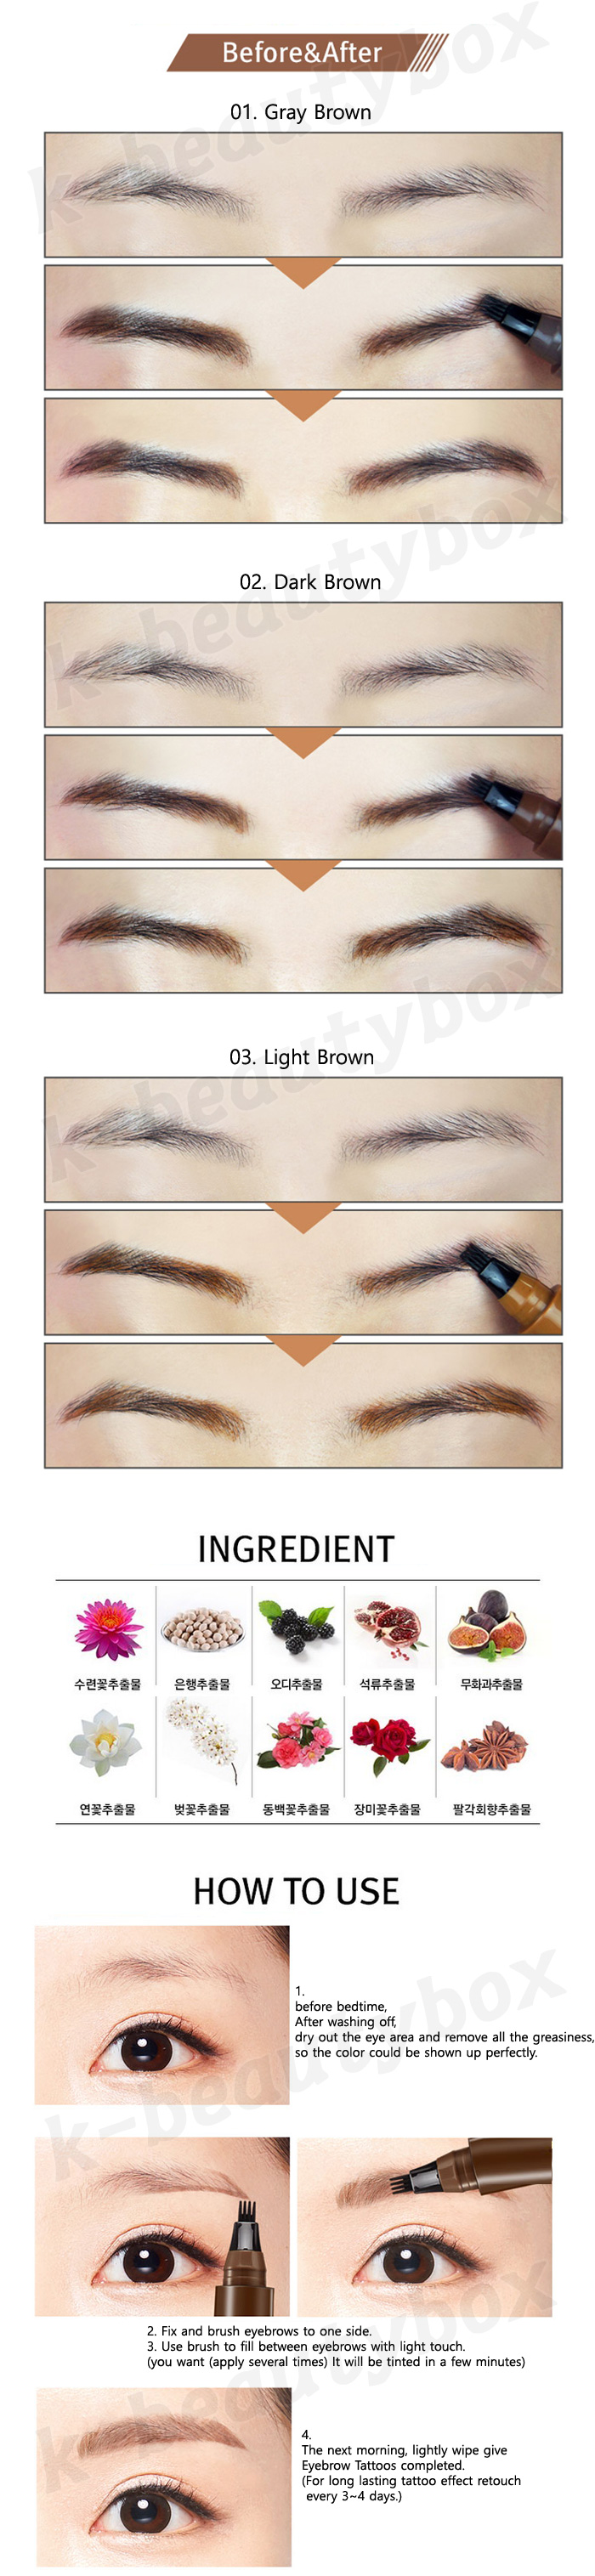 Fork Tattoo Eyebrow Light Brown Lasts Up To 8 Days Long Lasting